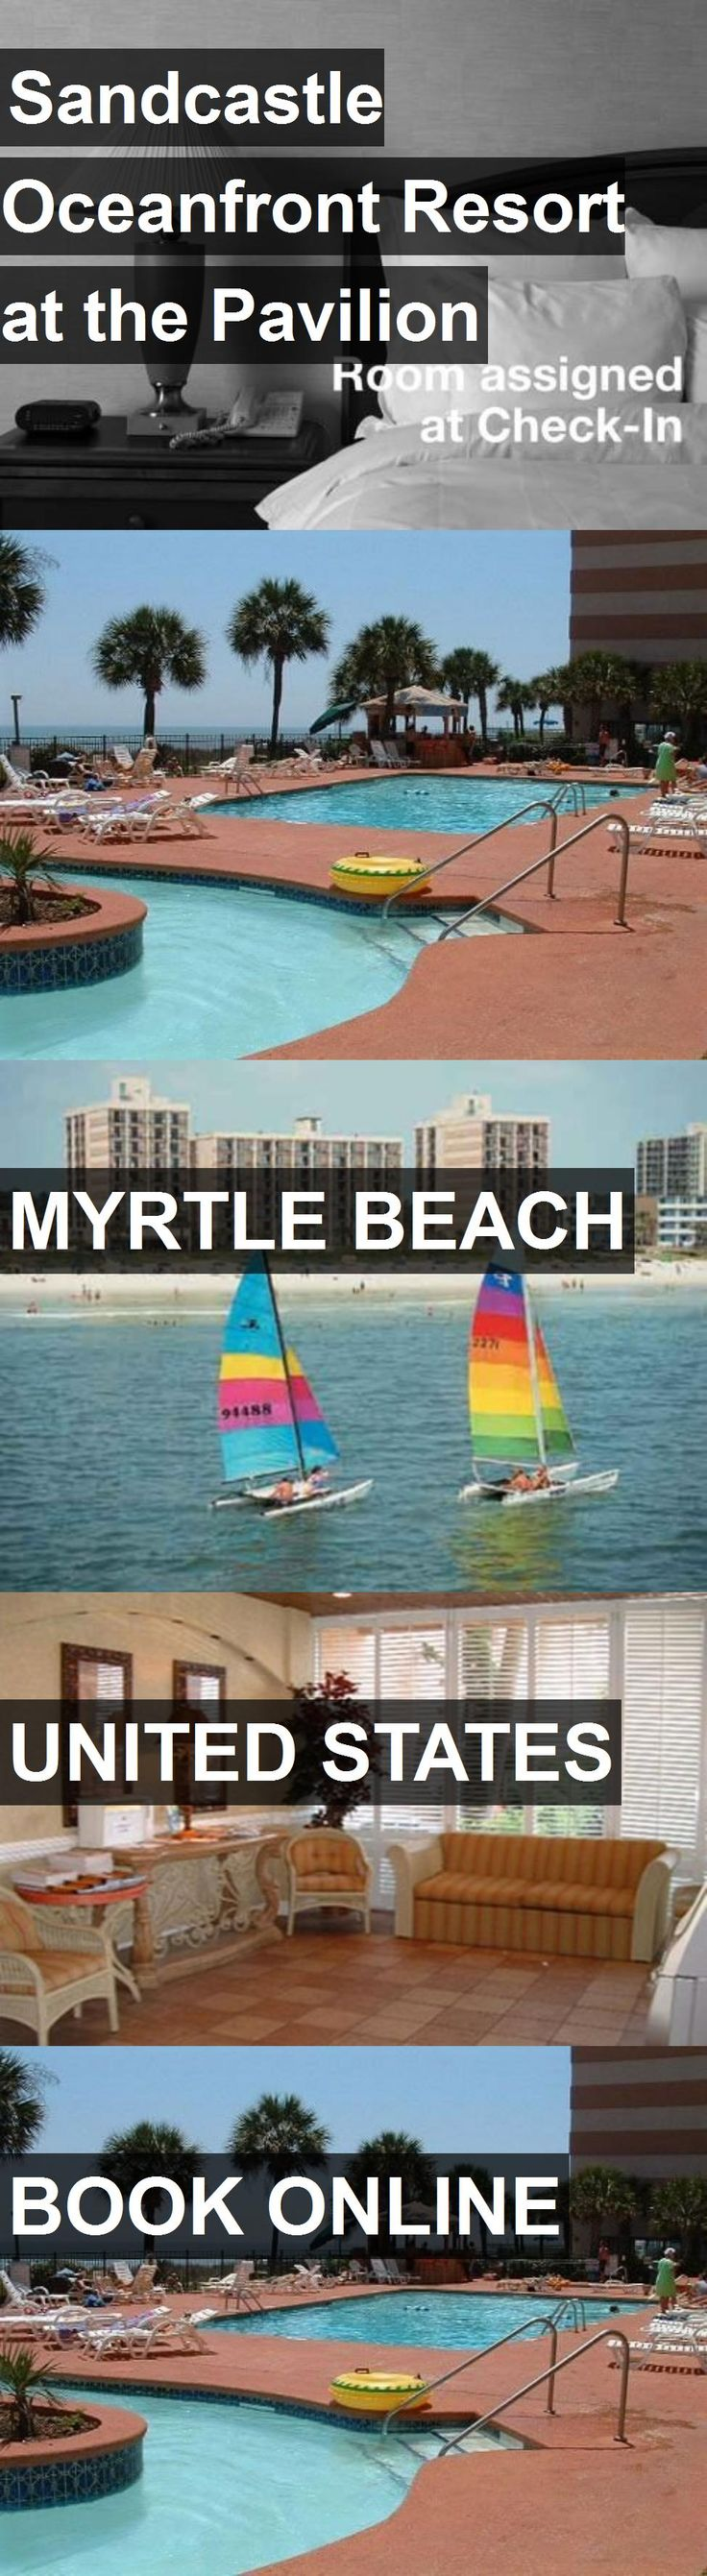 Hotel Sandcastle Oceanfront Resort at the Pavilion in Myrtle Beach, United States. For more information, photos, reviews and best prices please follow the link. #UnitedStates #MyrtleBeach #travel #vacation #hotel